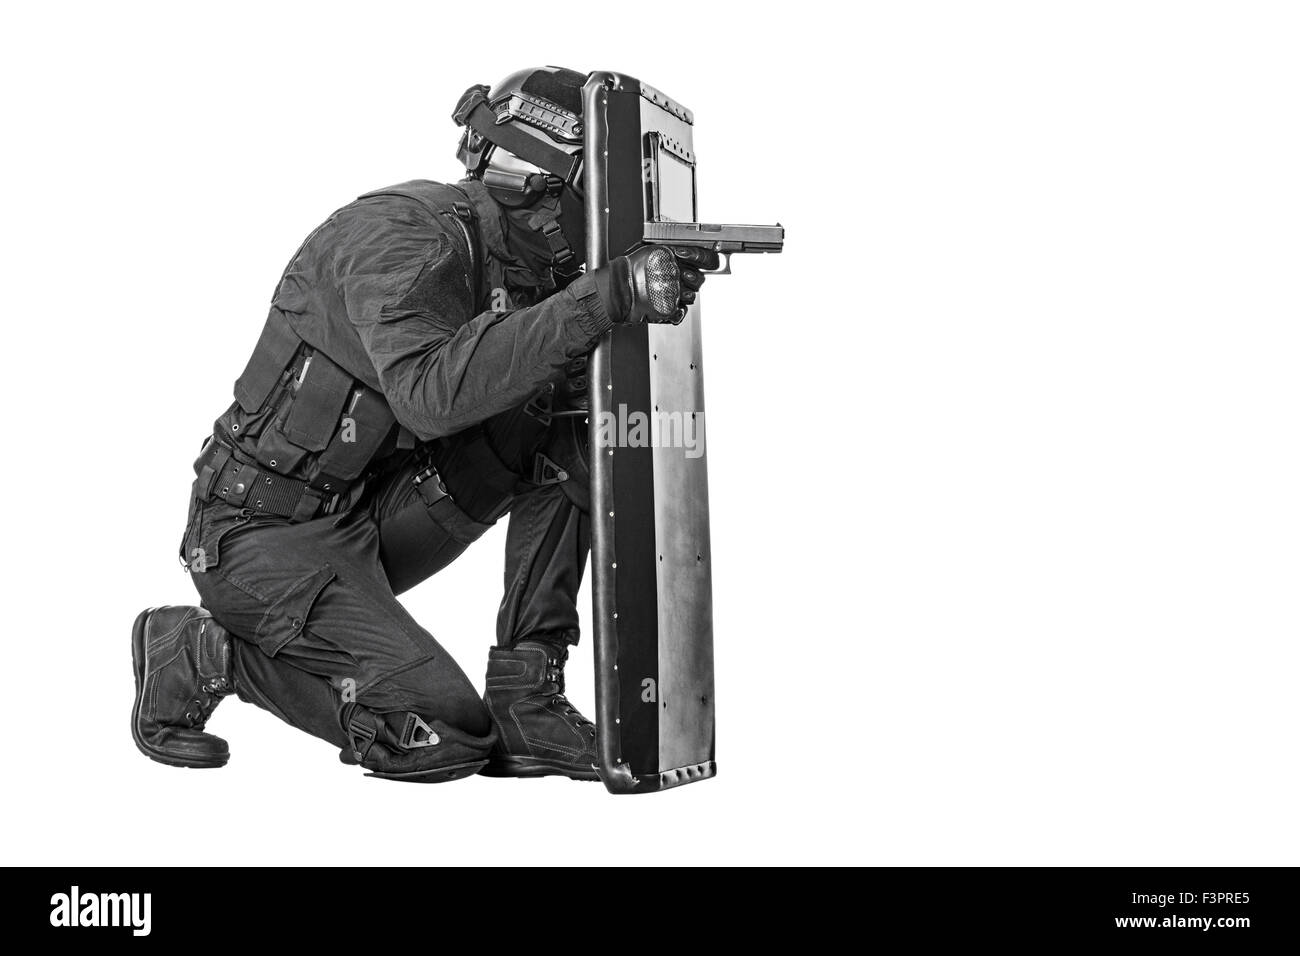 SWAT officer with ballistic shield - Stock Image